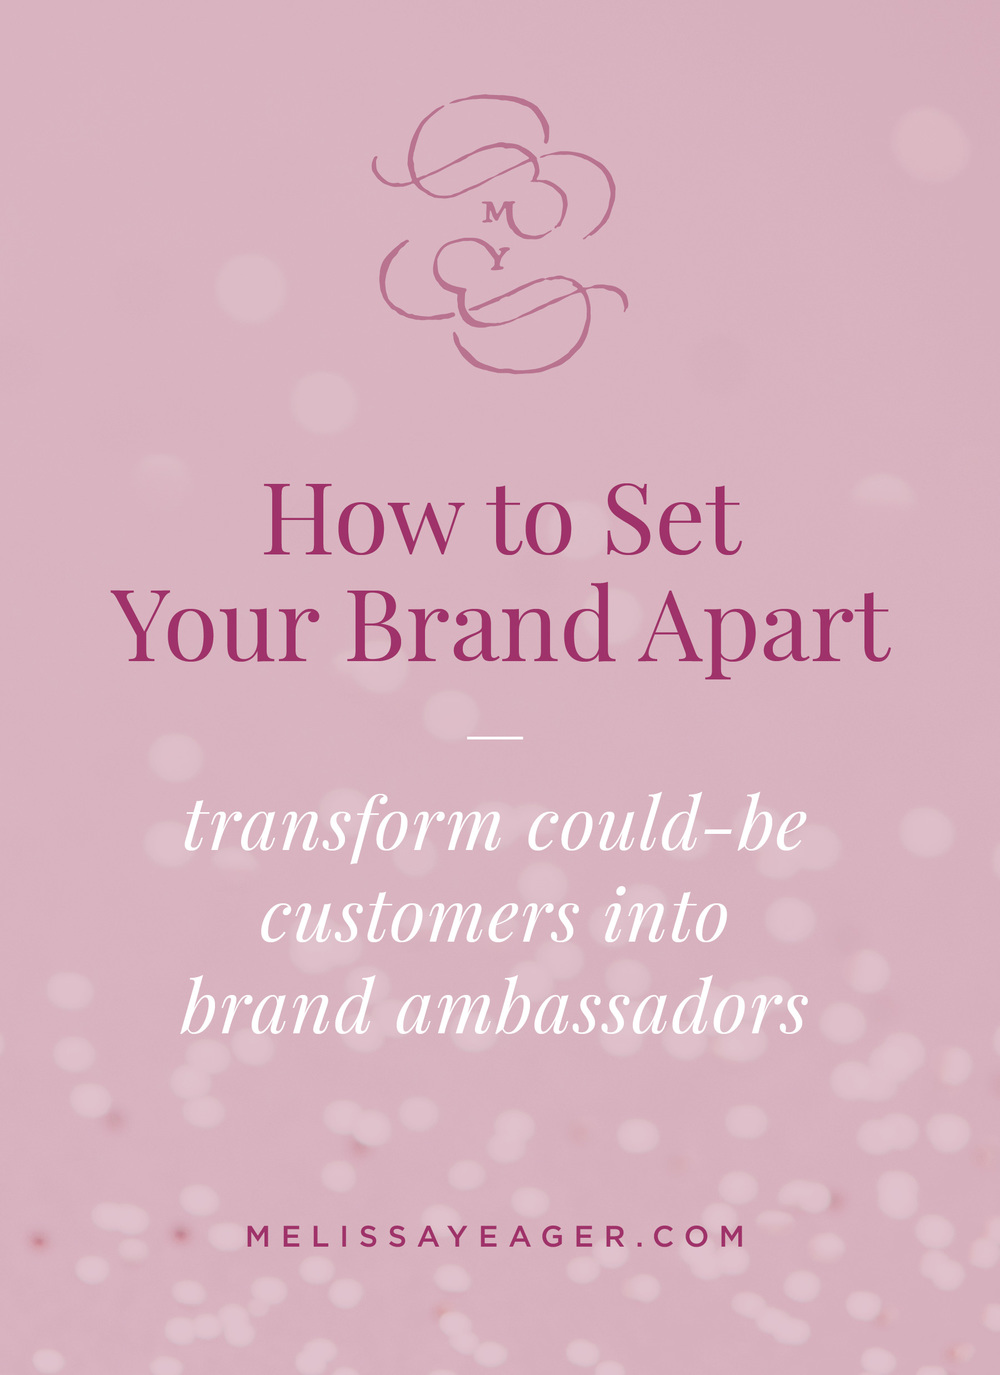 How to Set Your Brand Apart - transform could-be customers into brand ambassadors